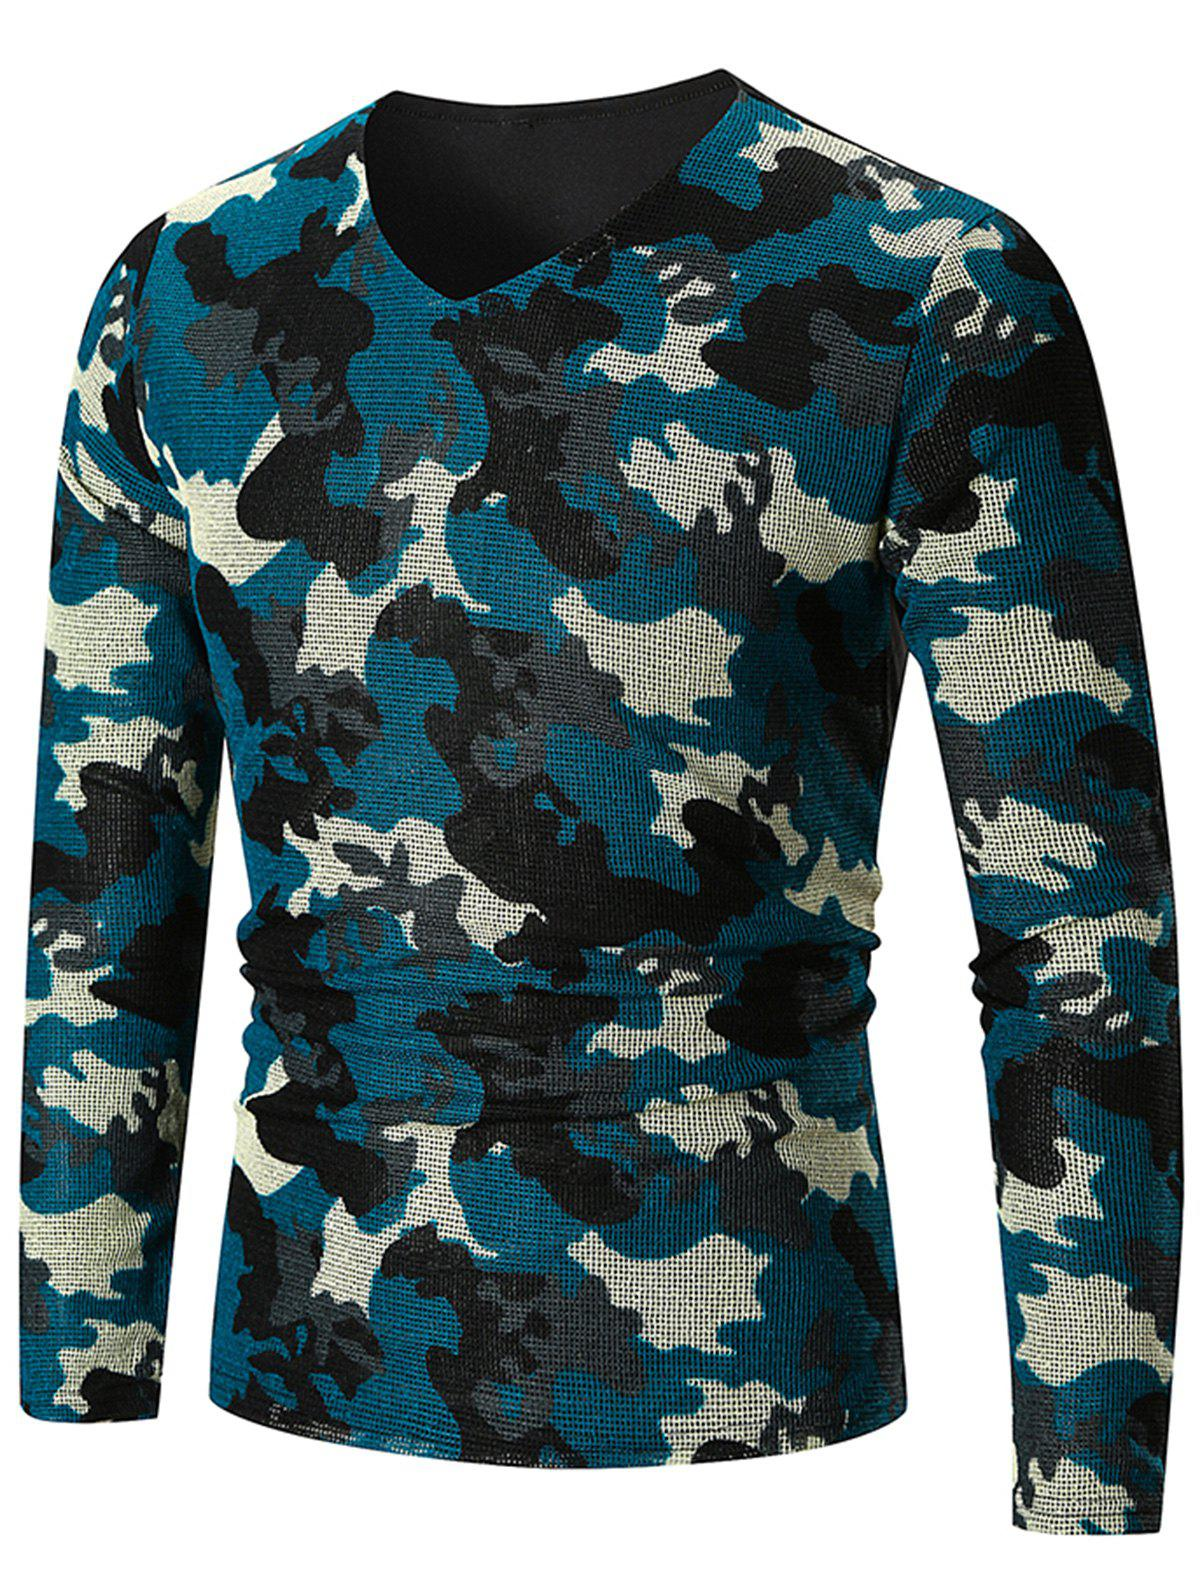 New V Neck Camo Pattern Long Sleeve T-shirt